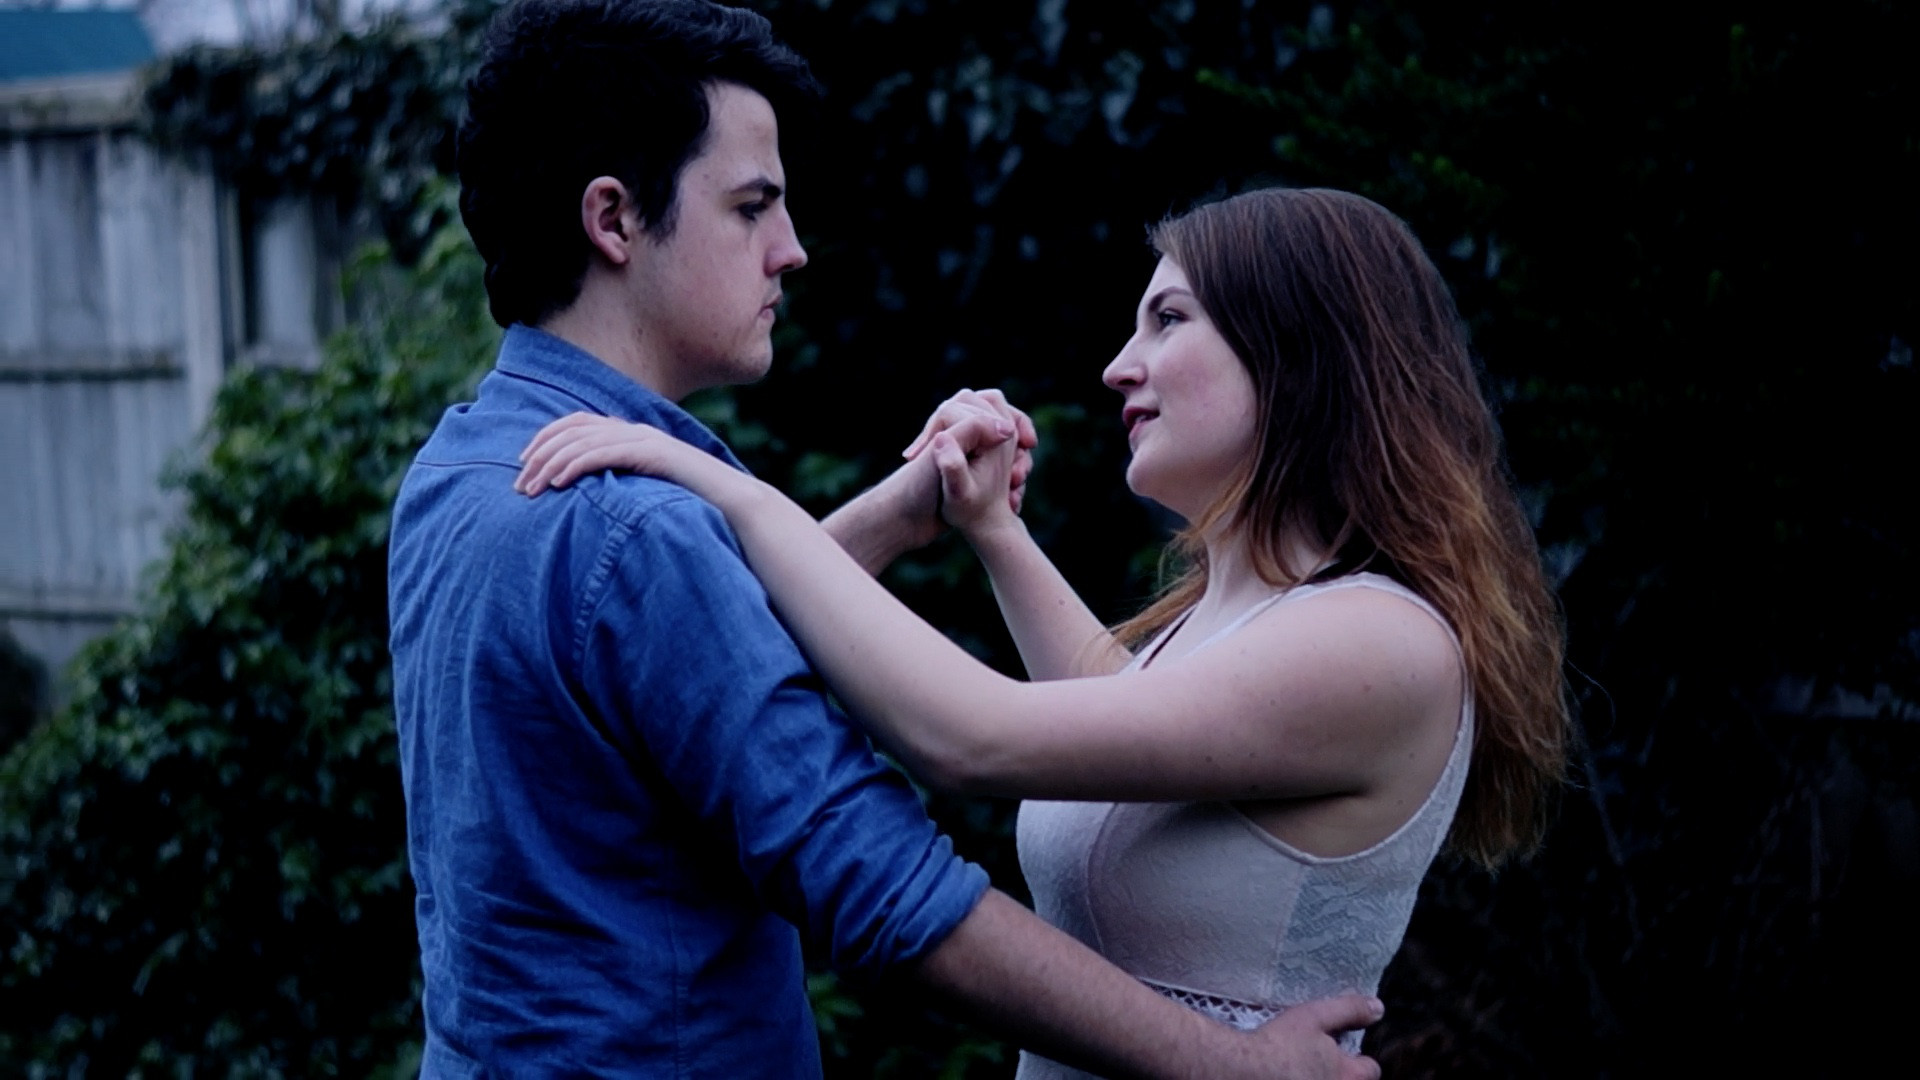 David Thompson and Leah Sperring as Emmett Shelby and Jess Spencer